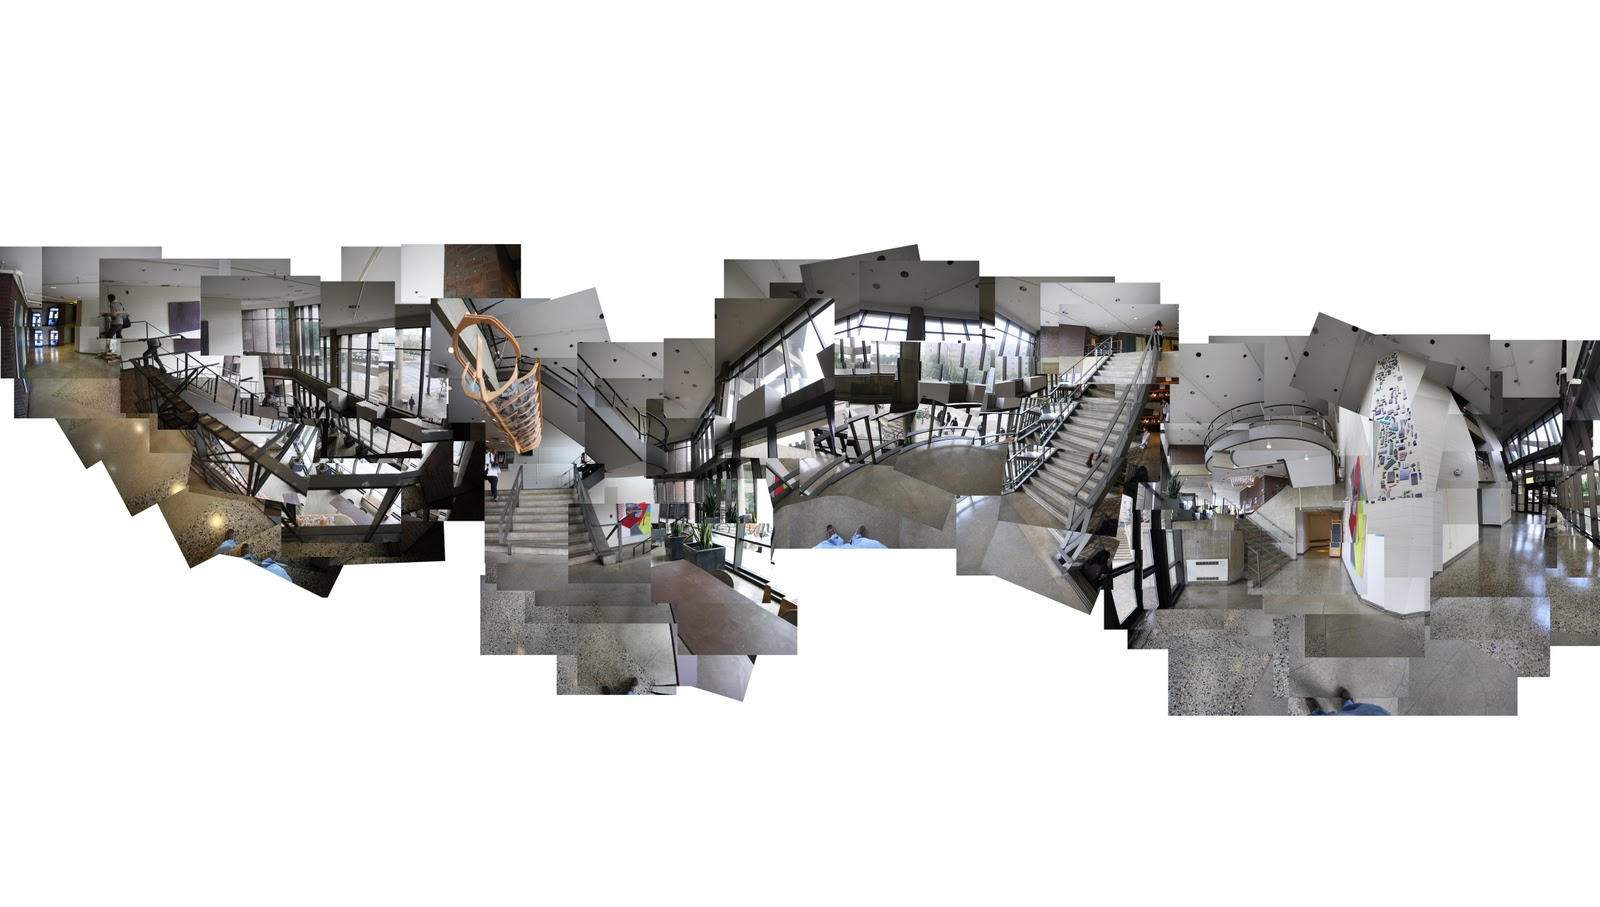 architecture in time: 2nd Sections of Collages